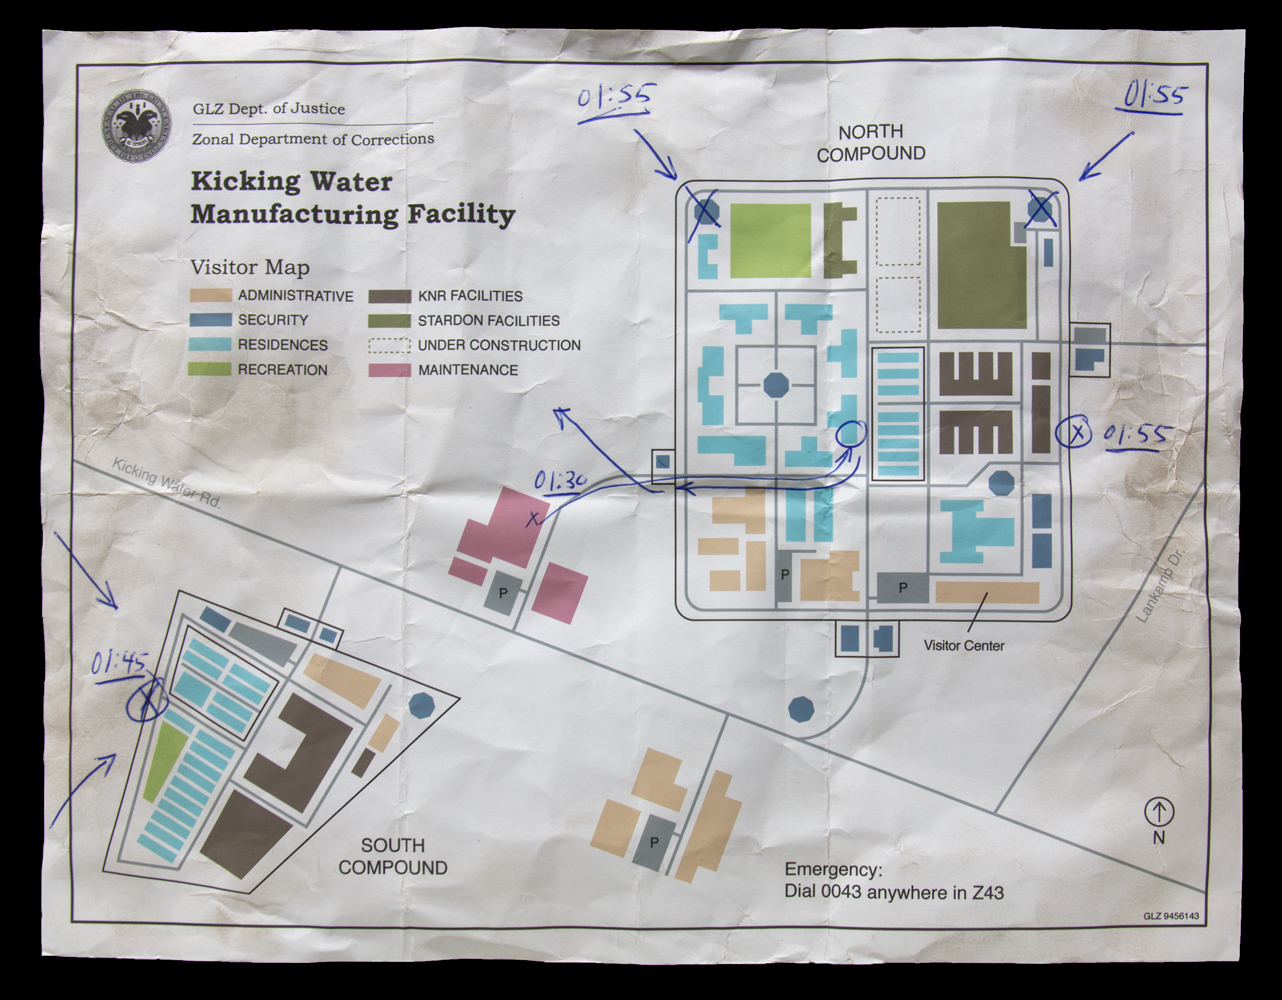 Map of the Kicking Water Manufacturing Facility